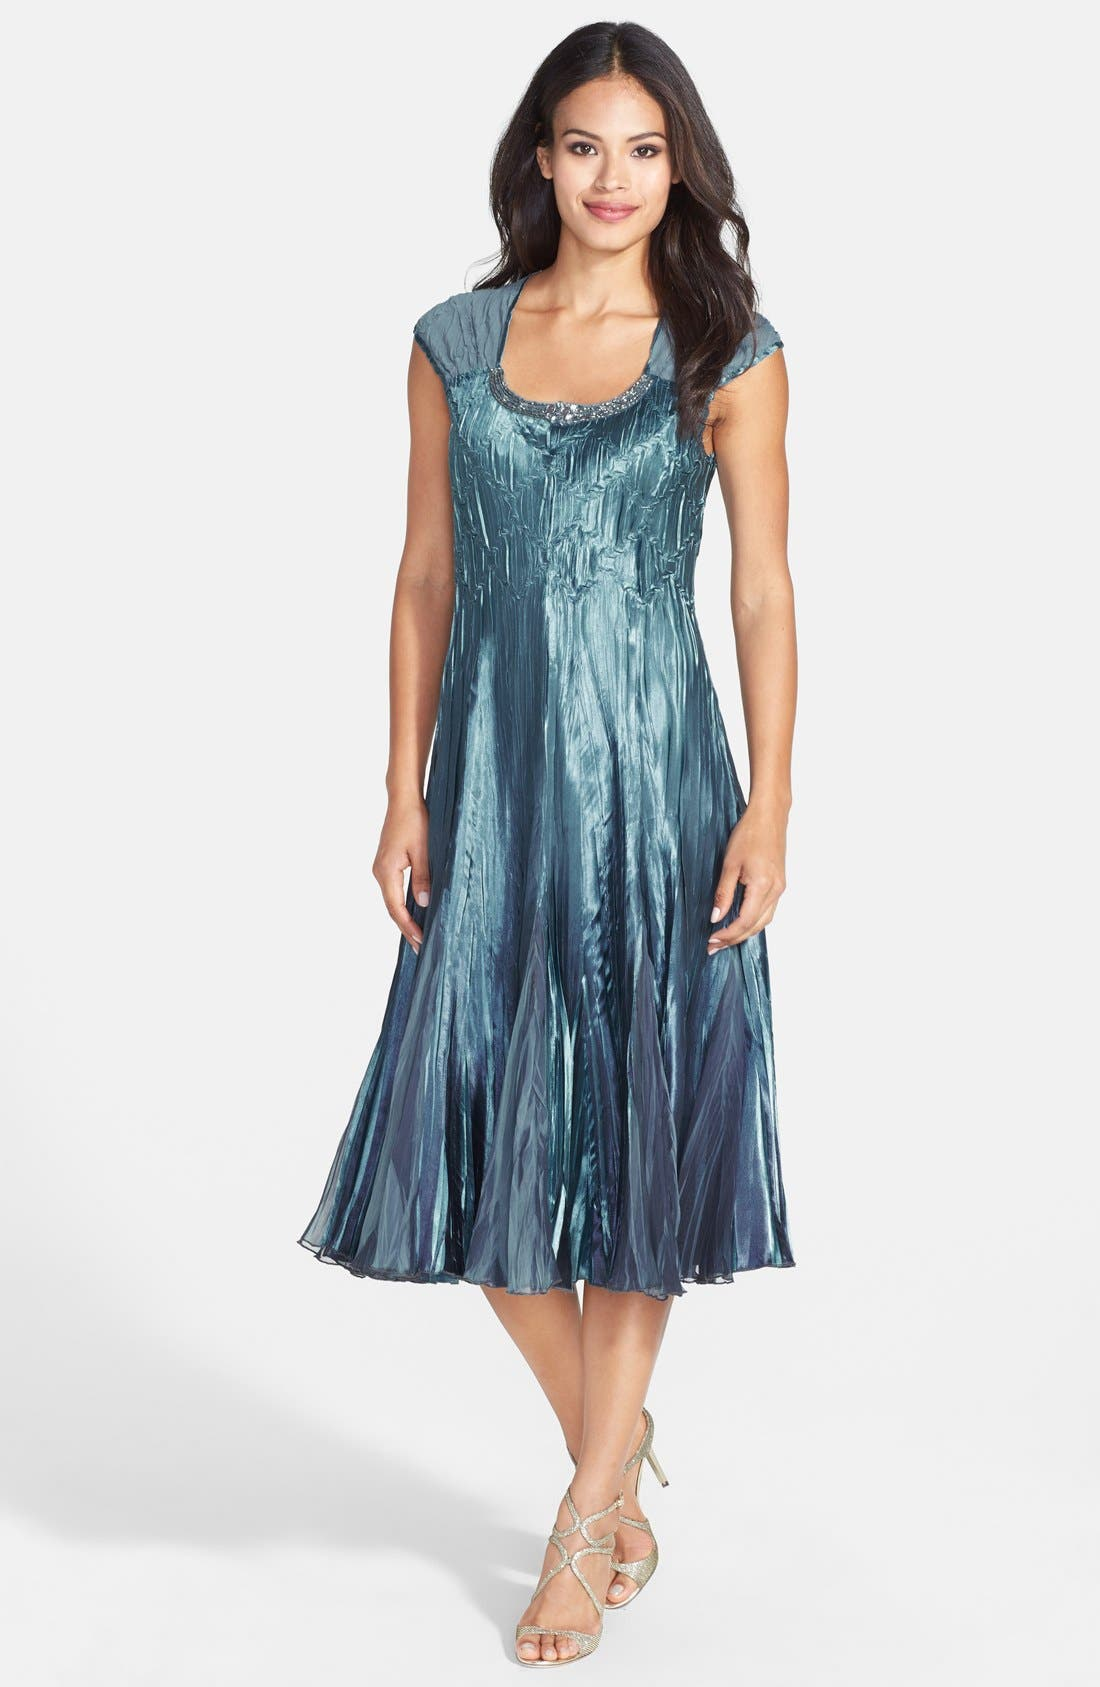 Embellished Pleat Mixed Media Dress with Jacket,                             Alternate thumbnail 10, color,                             SILVER BLUE OMBRE